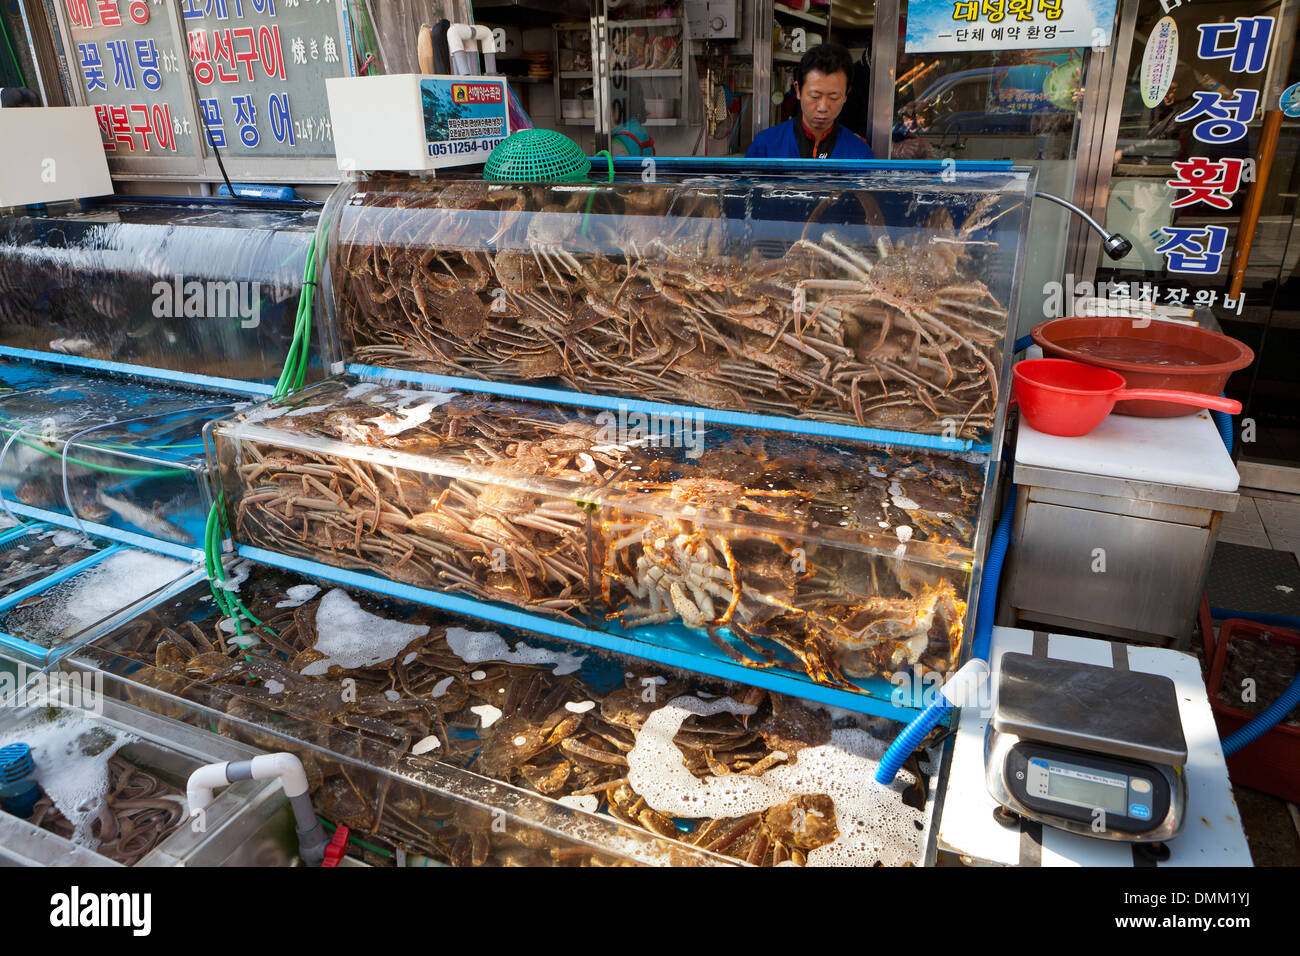 Outdoor Live Spider Crabs On Display In Front Of Sashimi Restaurant Stock Photo Alamy